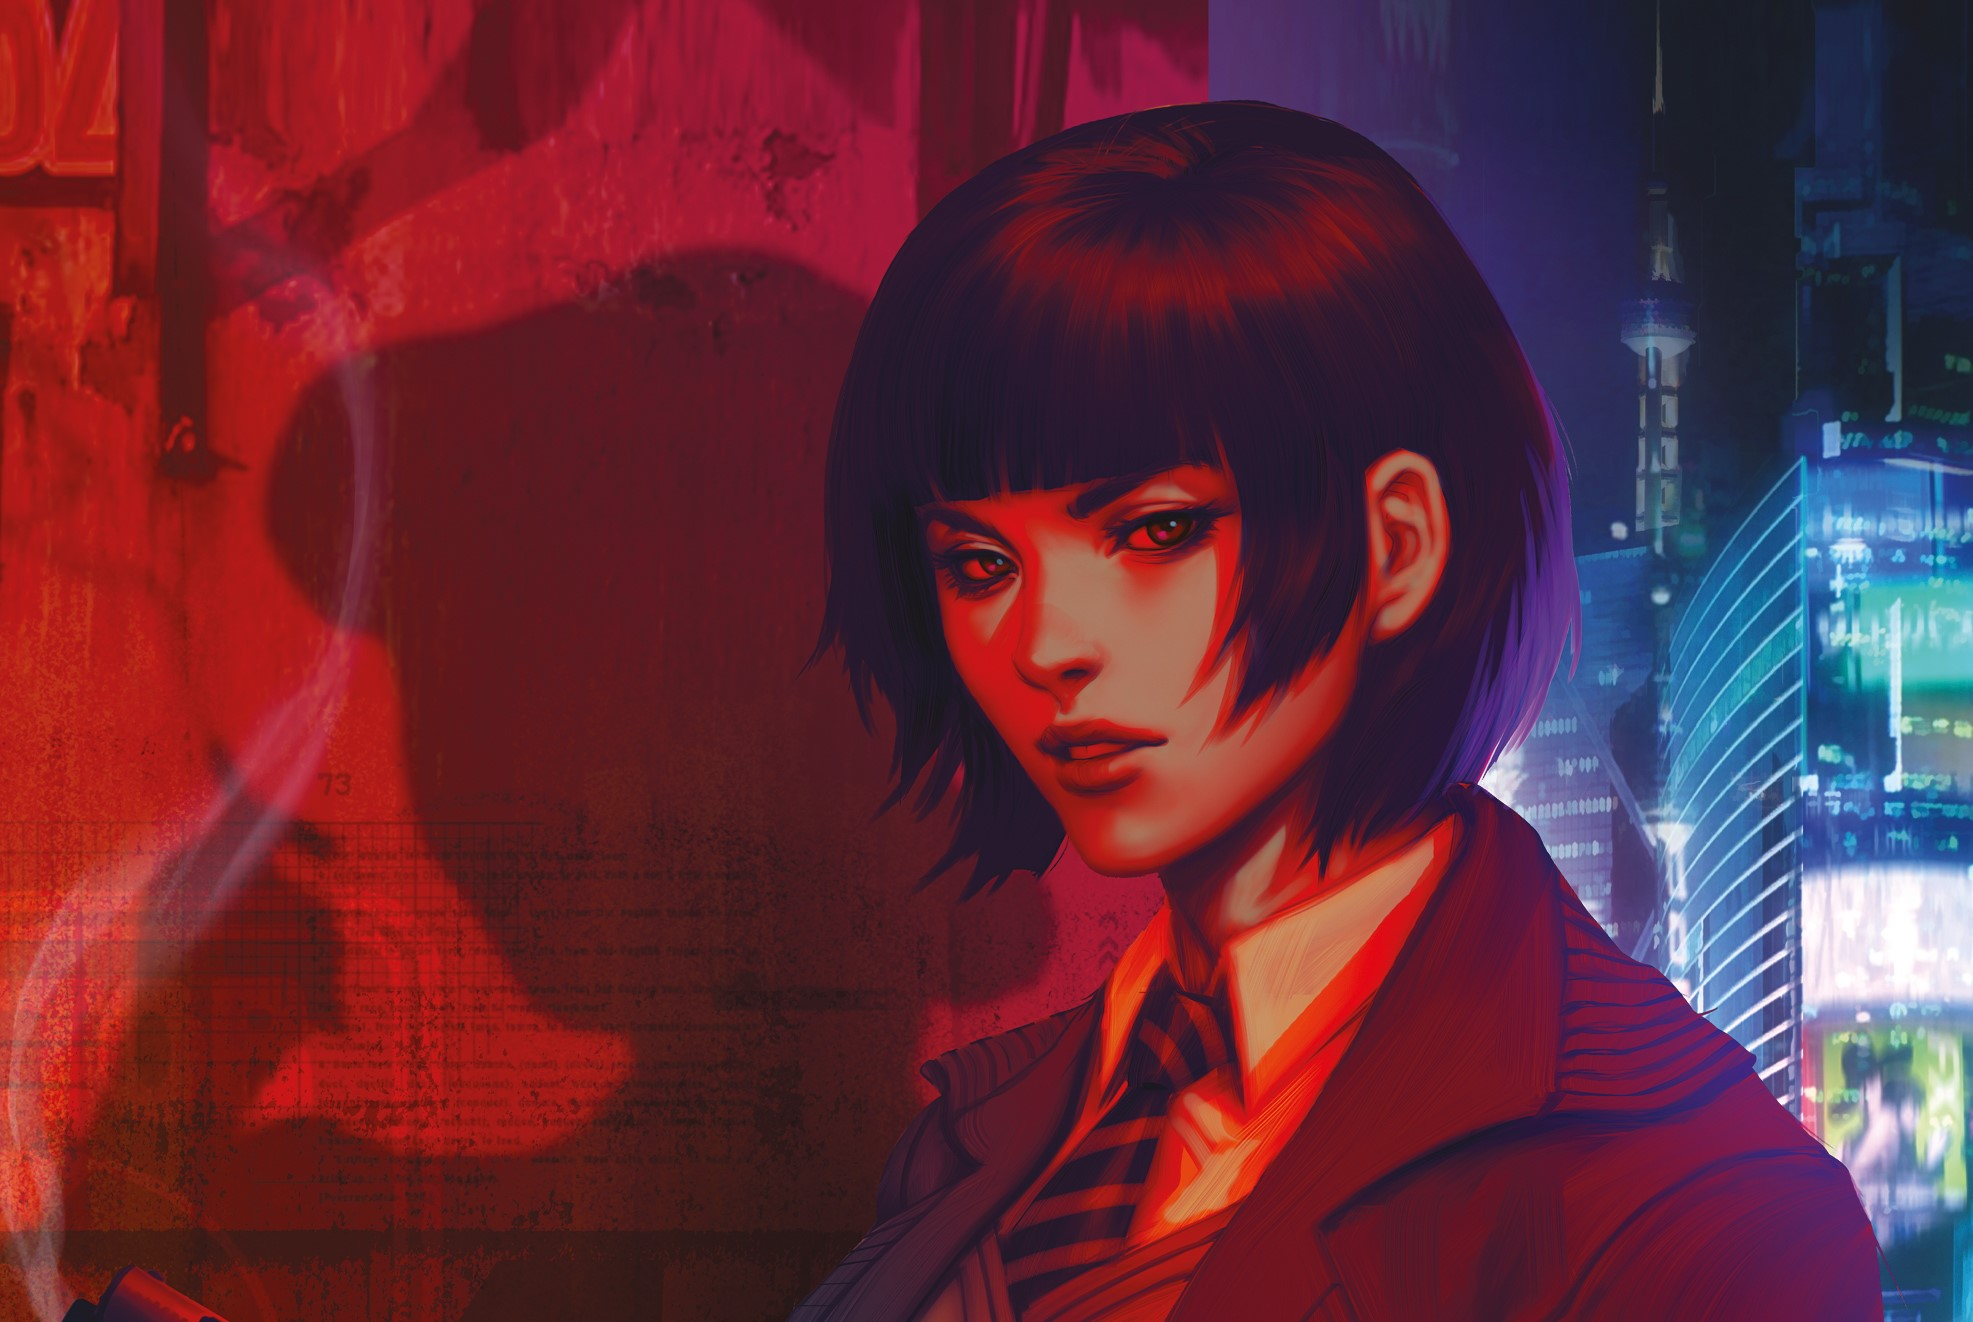 Cover of Blade Runner 2019 #1 featuring the shadow of Rachel behind Ash.